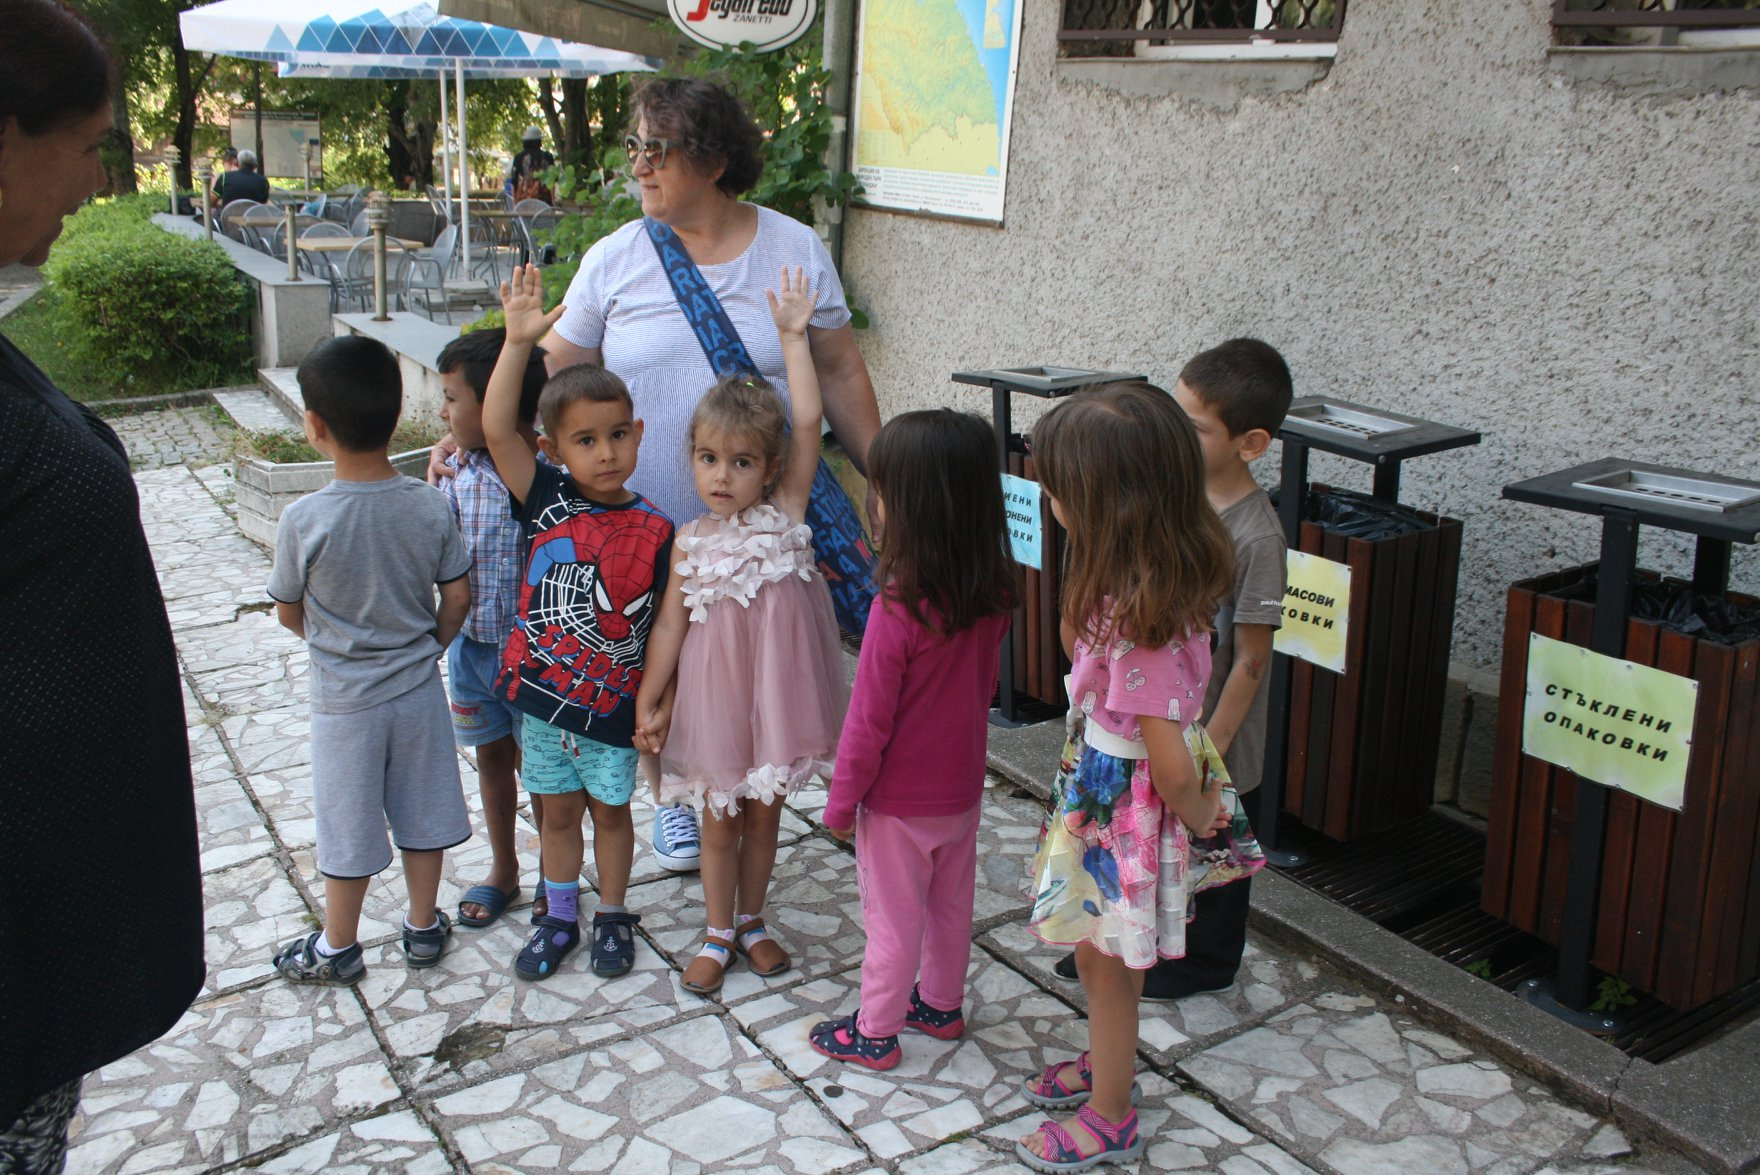 Open lesson on separate waste collection in Malko Tarnovo